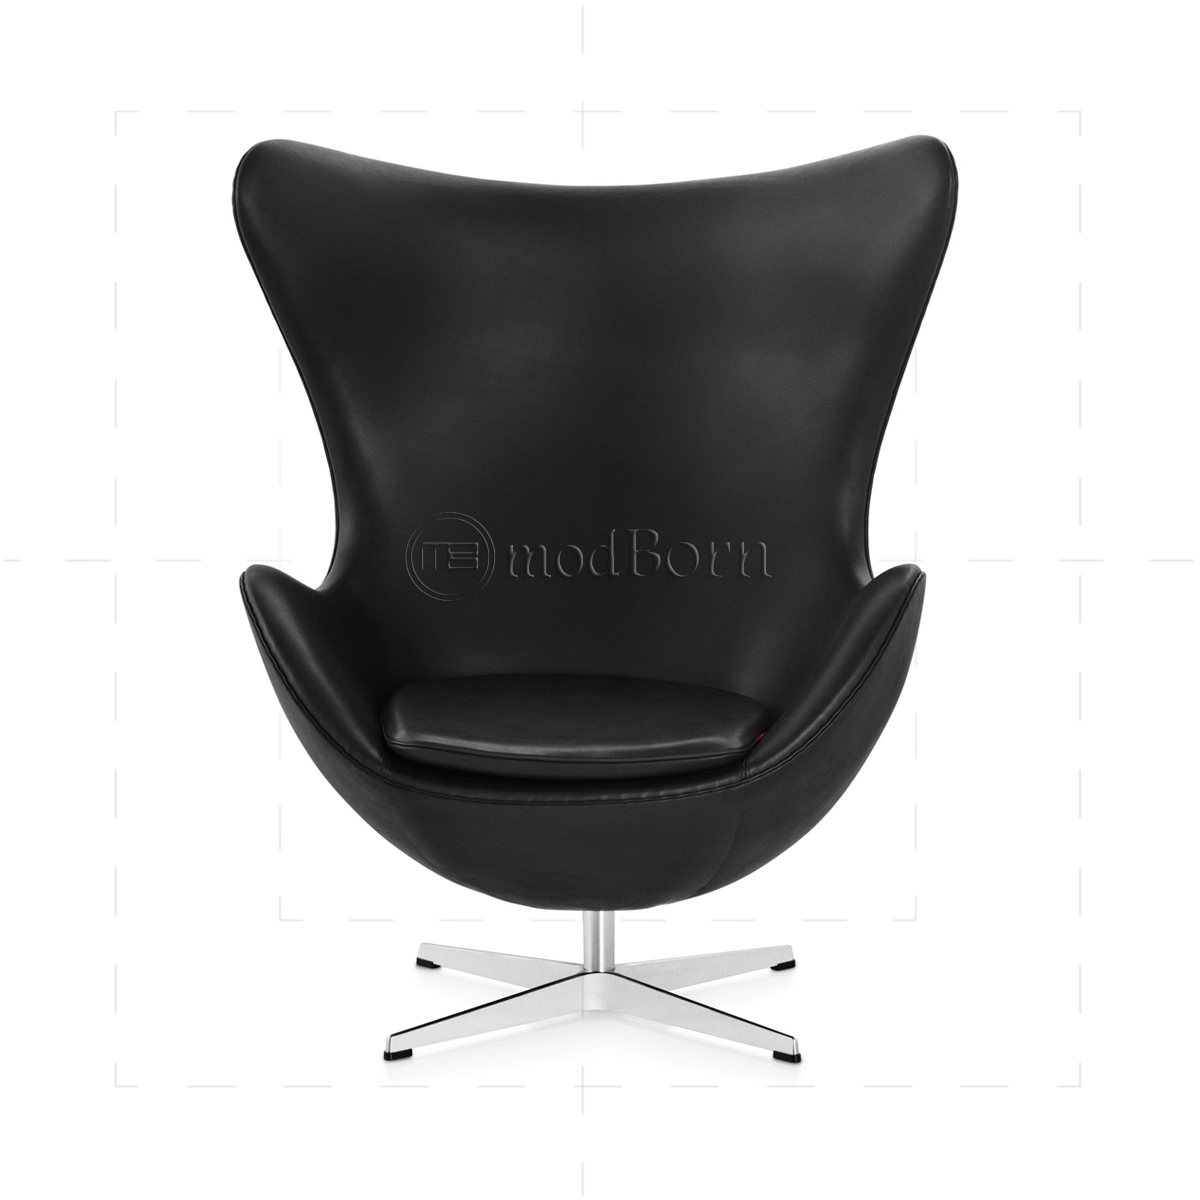 Arne jacobsen egg chair leather - Arne Jacobsen Style Egg Chair Black Leather